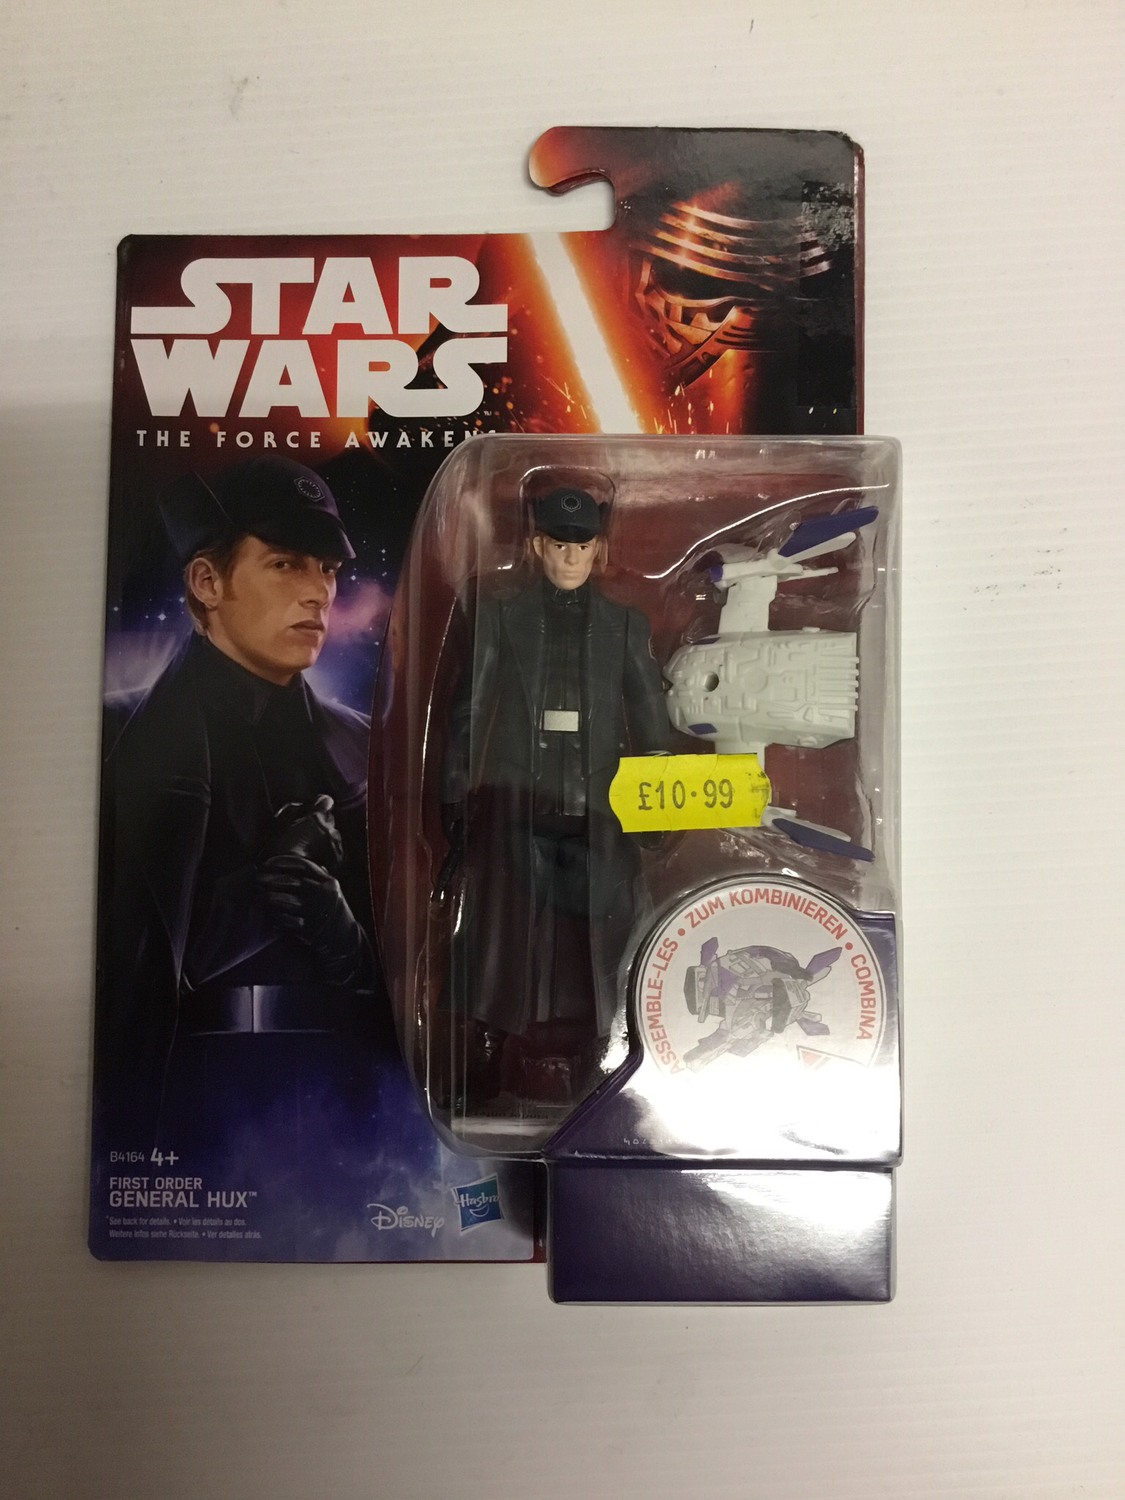 First order general hux Star Wars figure